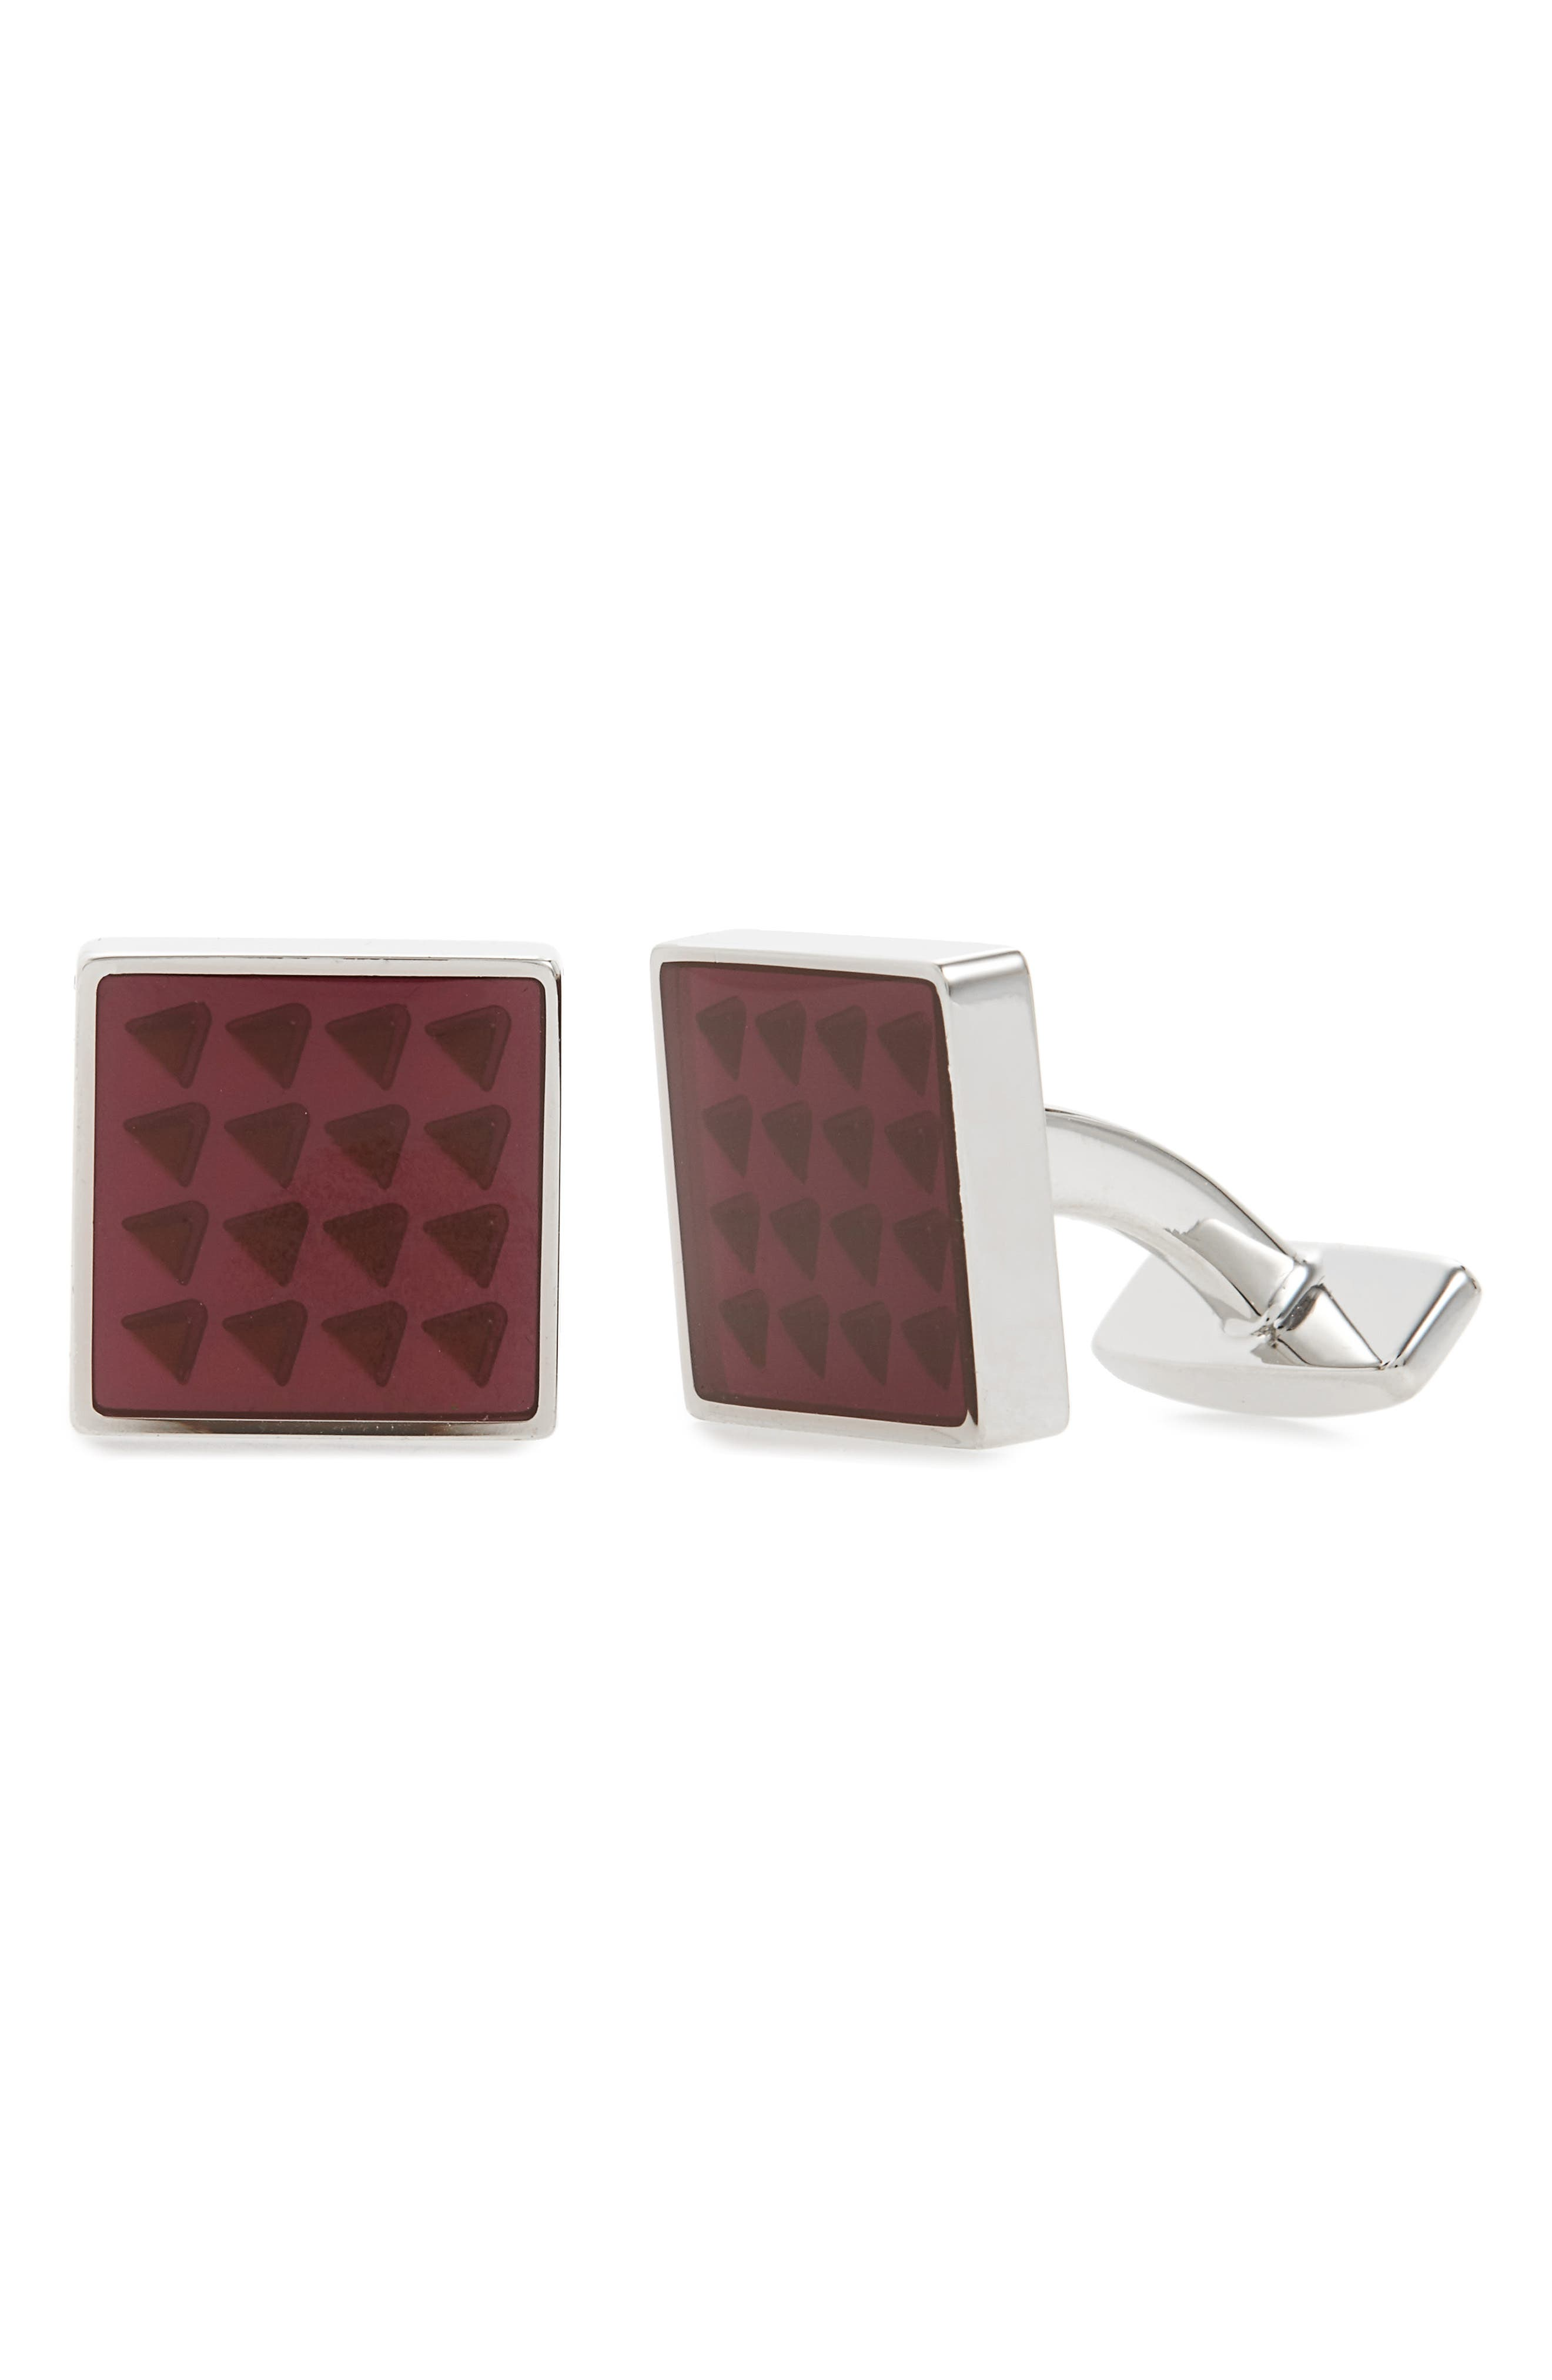 Brass Cuff Links,                             Main thumbnail 1, color,                             611